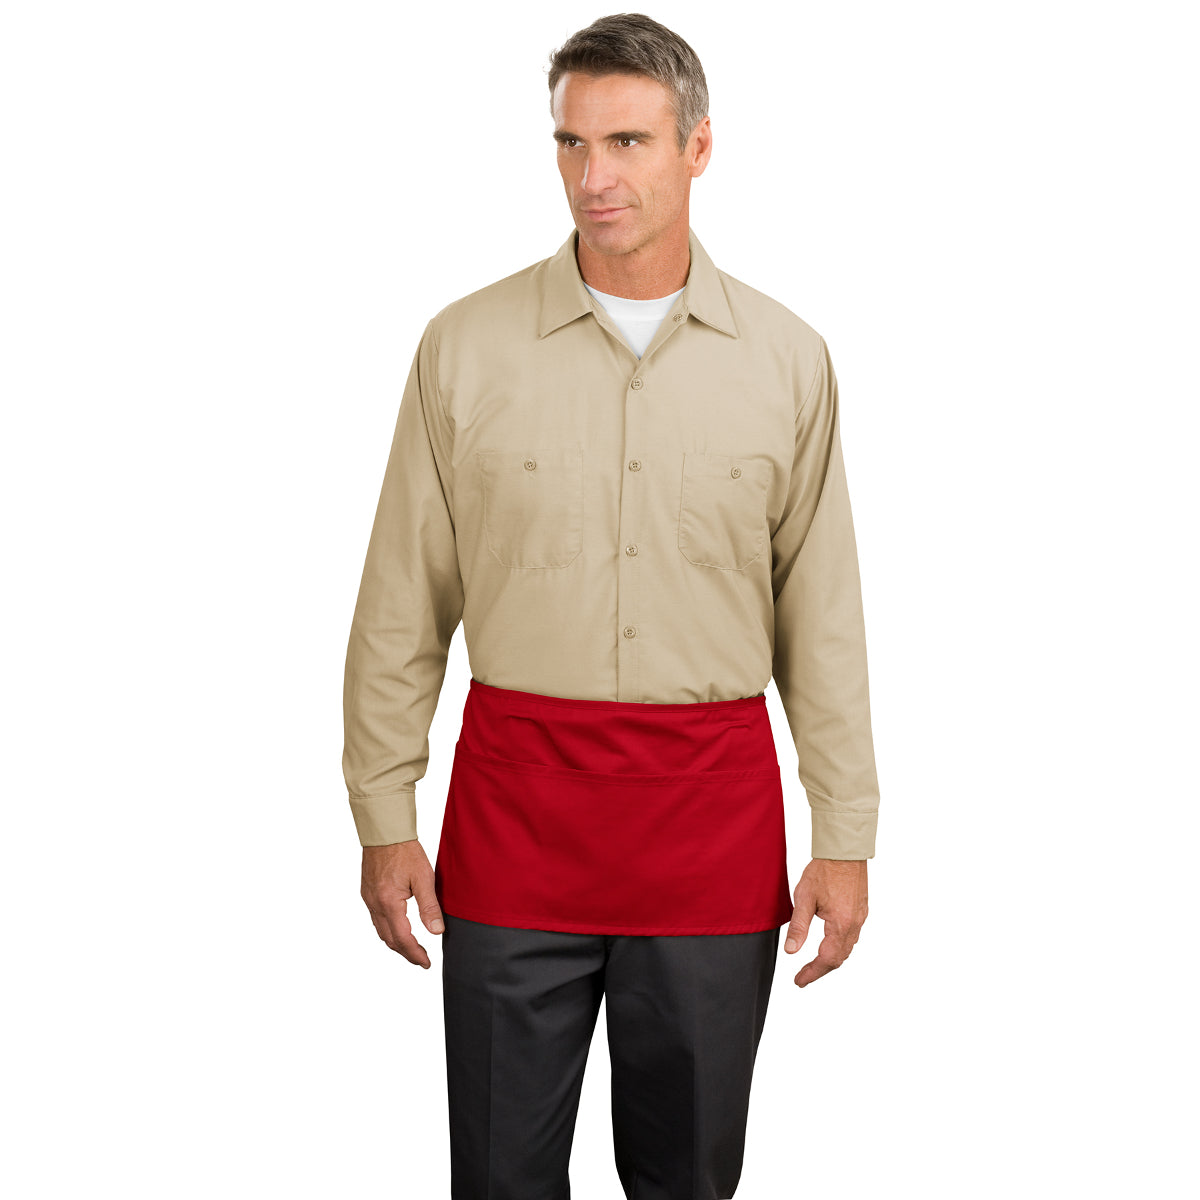 Waist Apron with Pockets Red